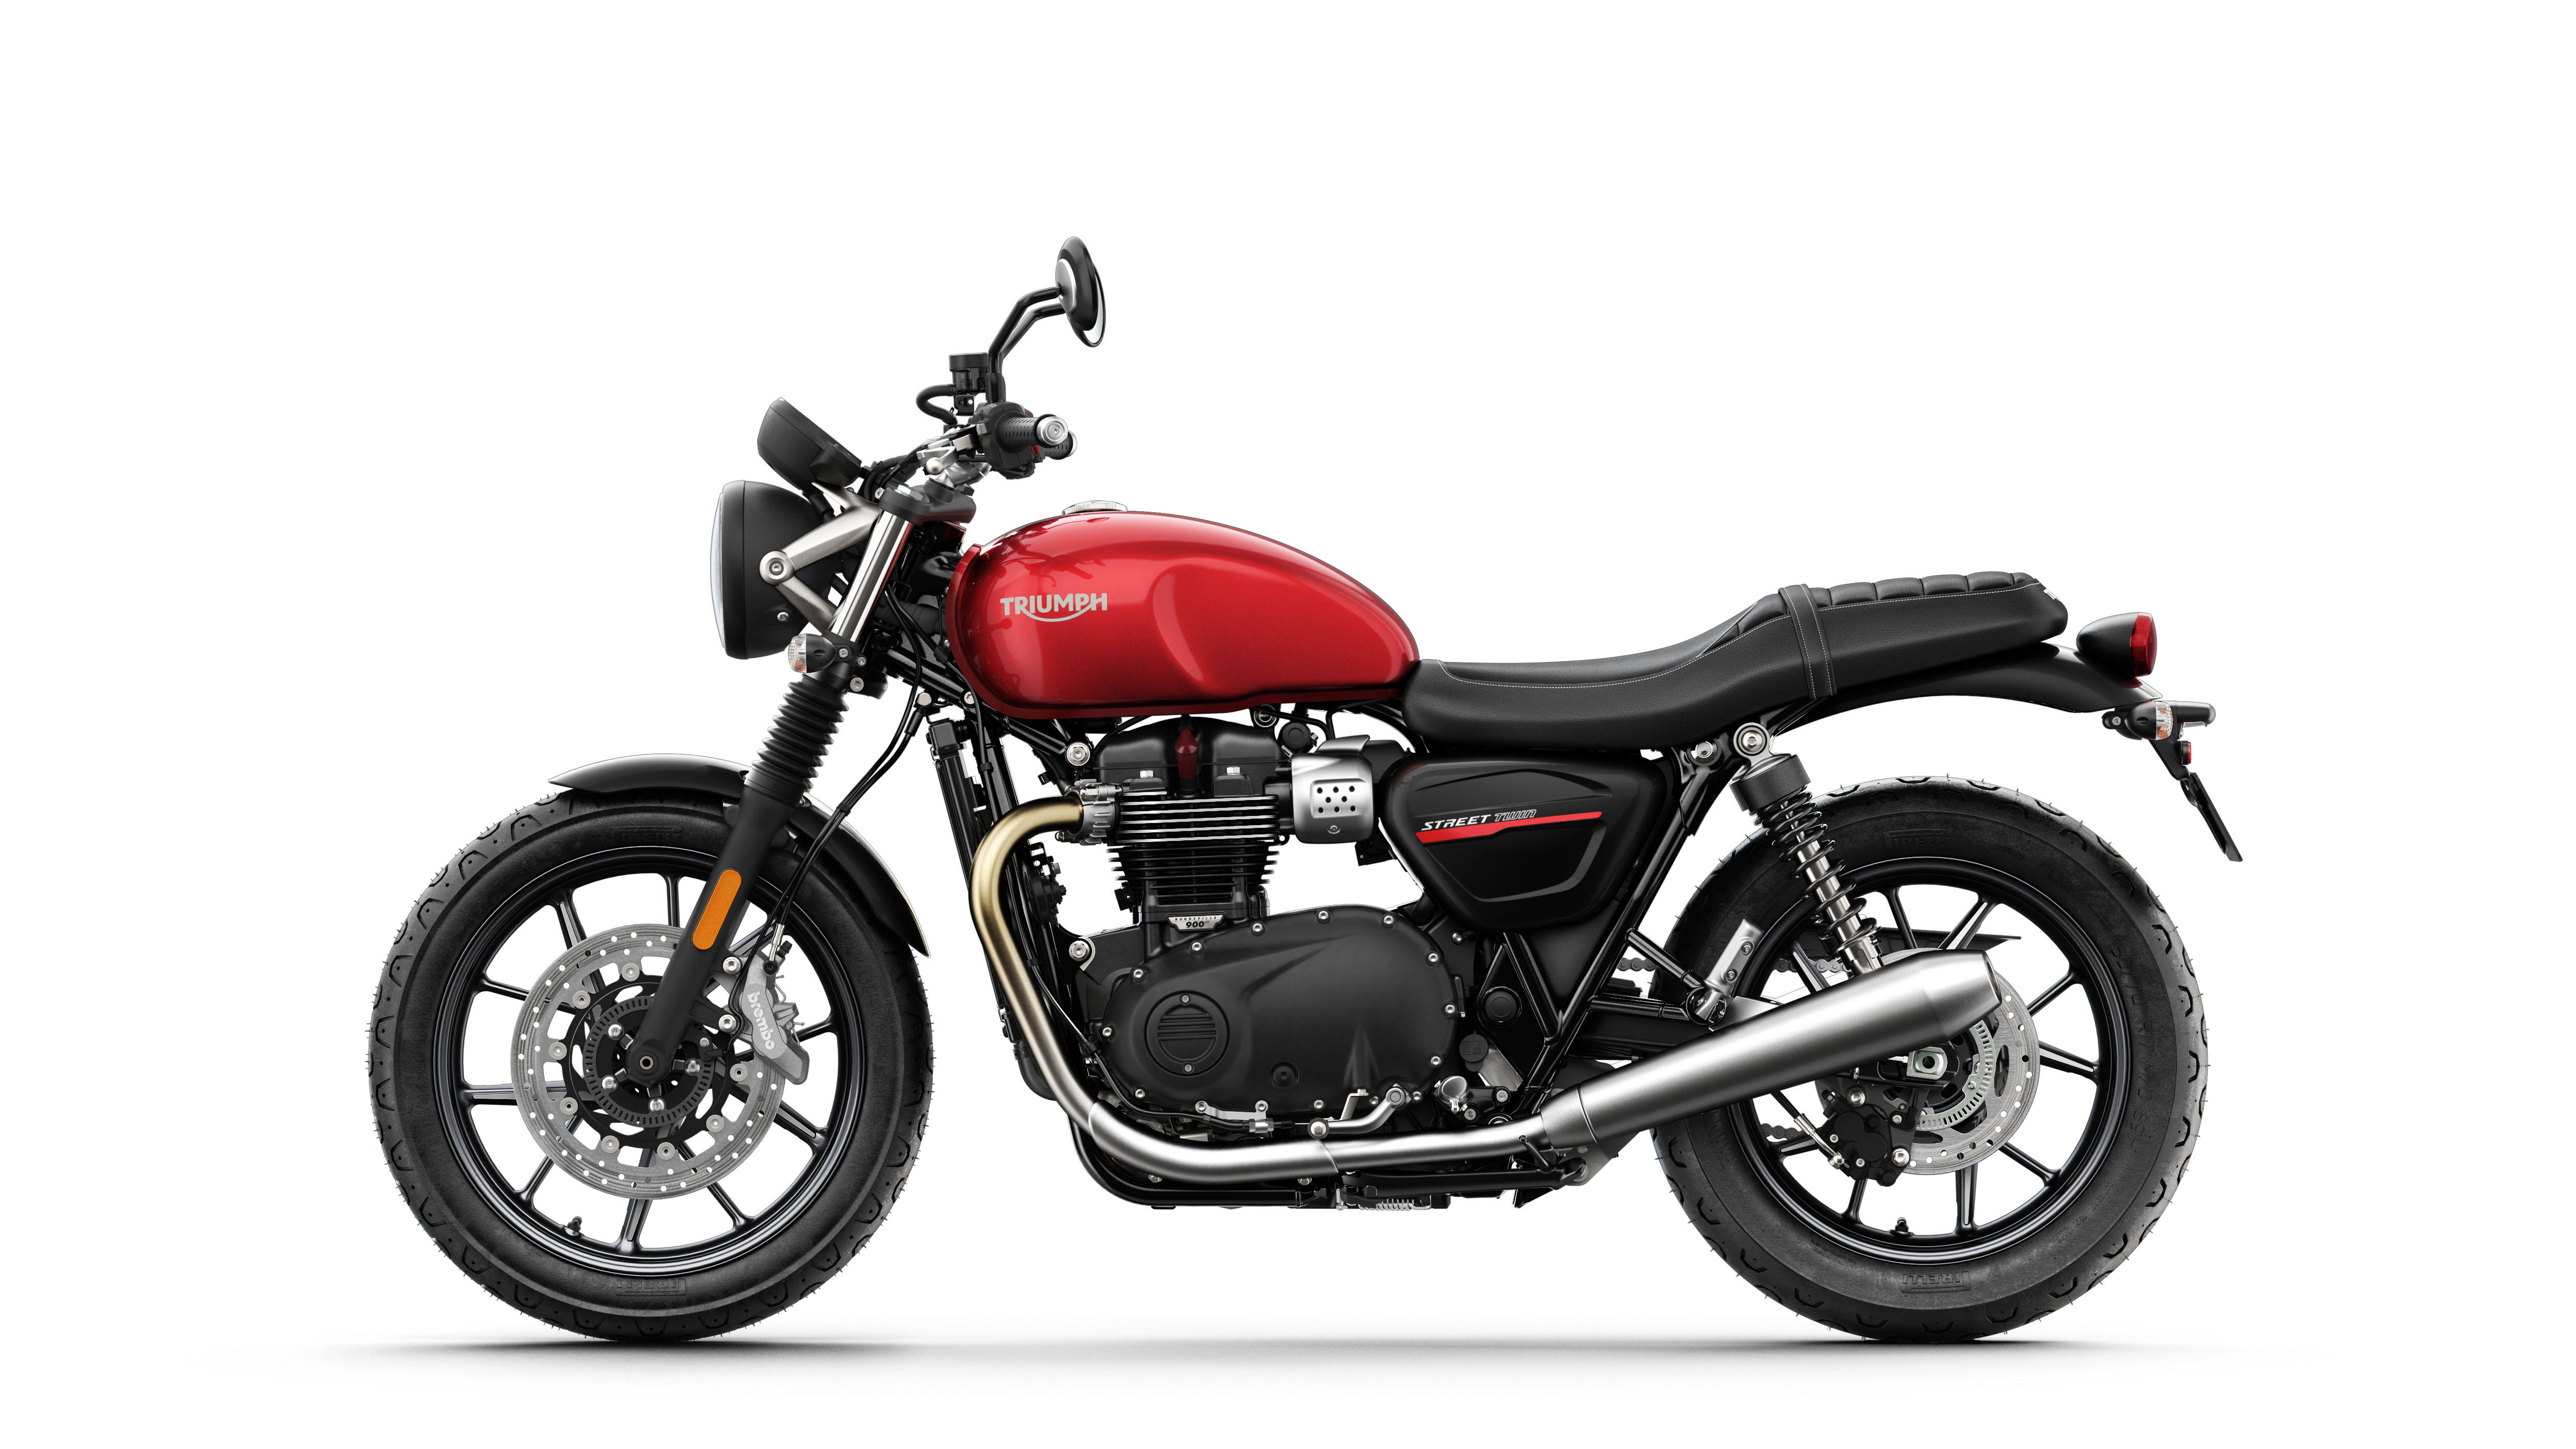 2019 triumph street twin updates revealed at intermot. Black Bedroom Furniture Sets. Home Design Ideas